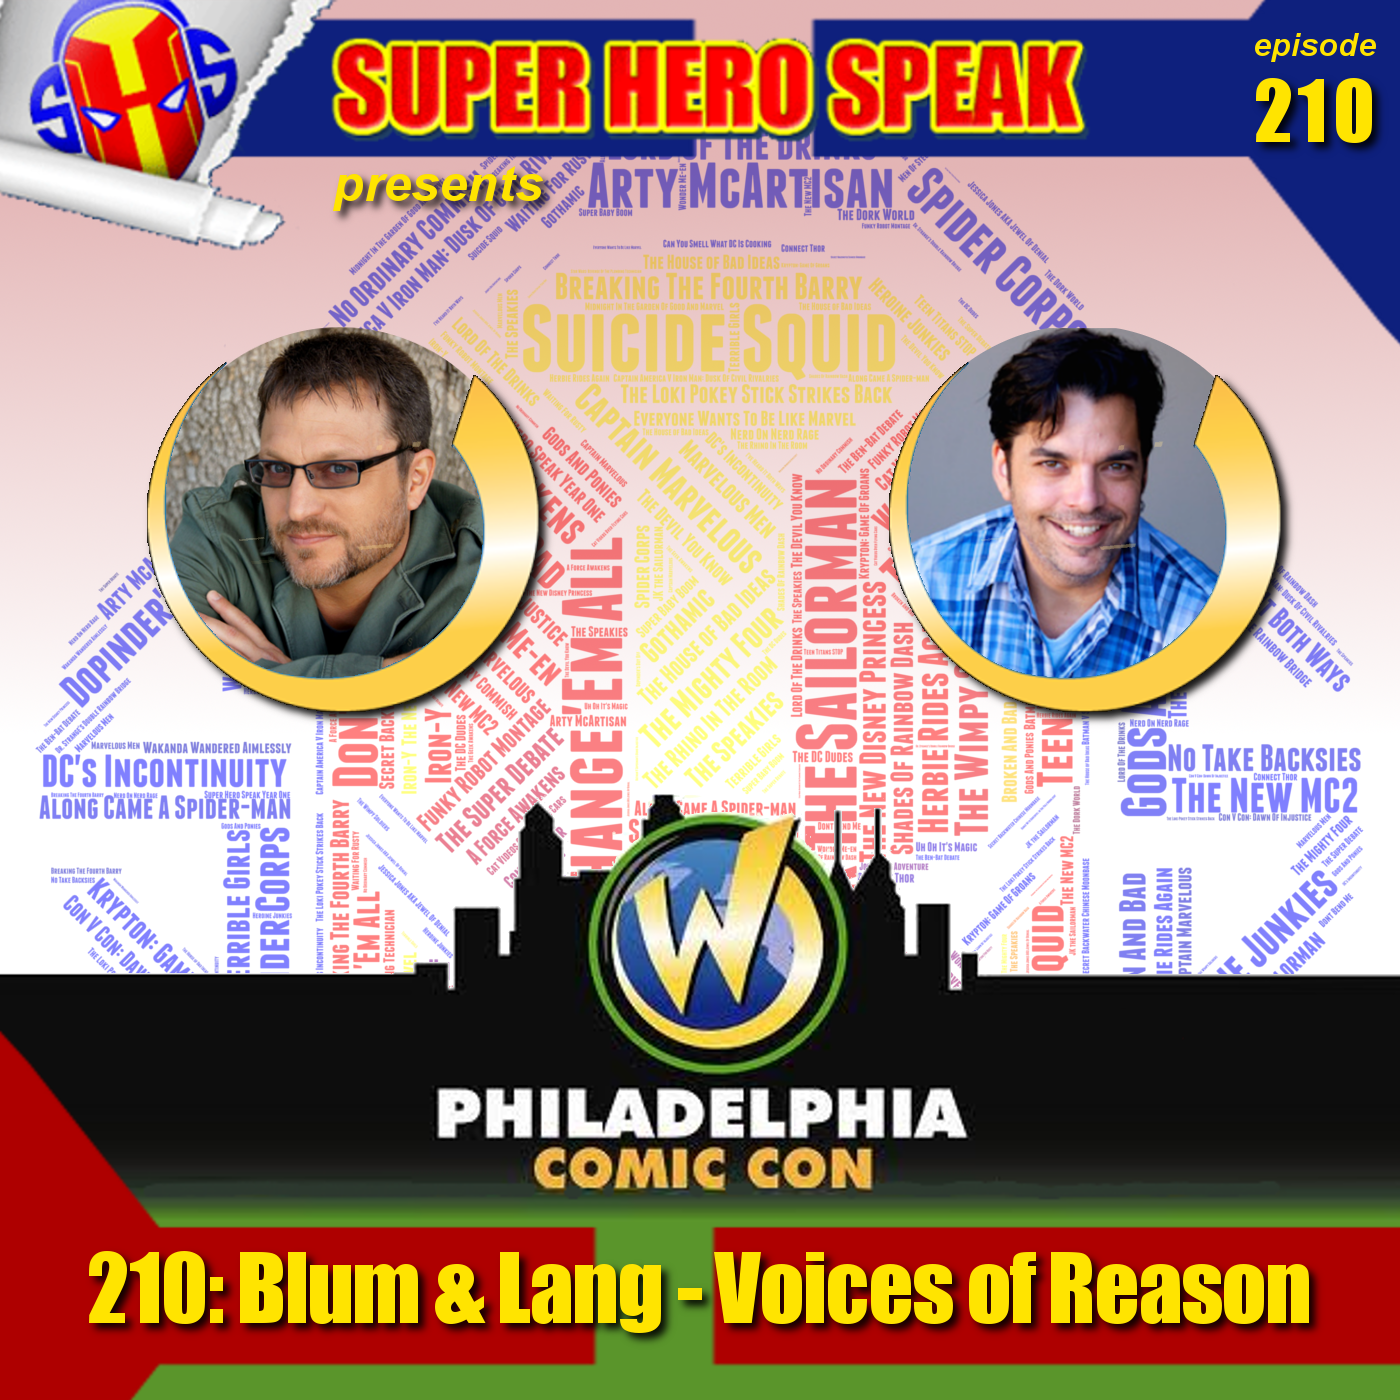 #210: Blum and Lang voices of reason